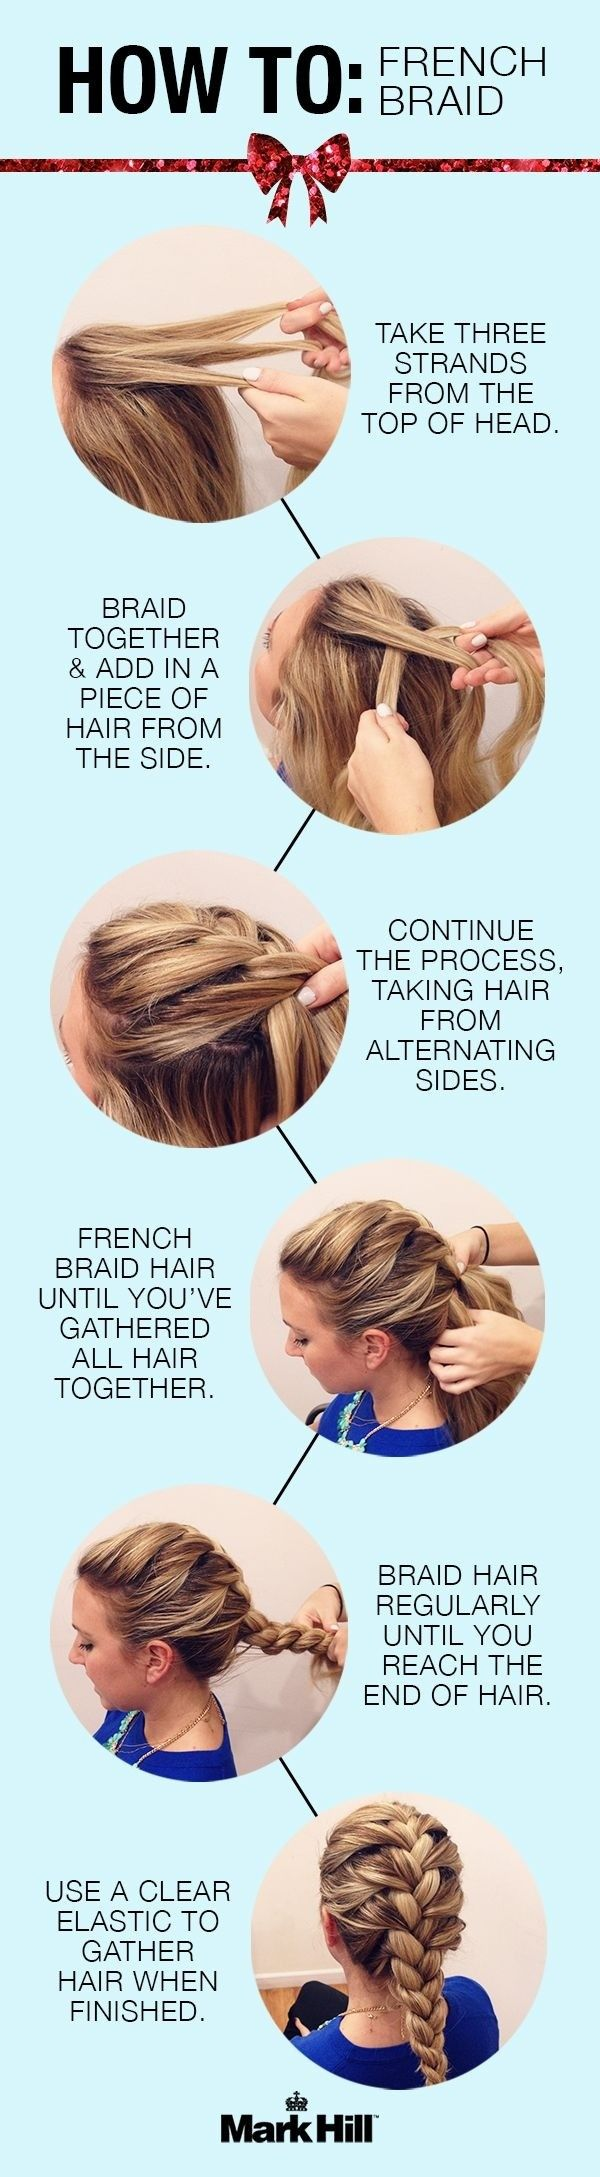 How to French Braided #Hairstyles: Classic Braid Tutorial #beauty #haircare #style